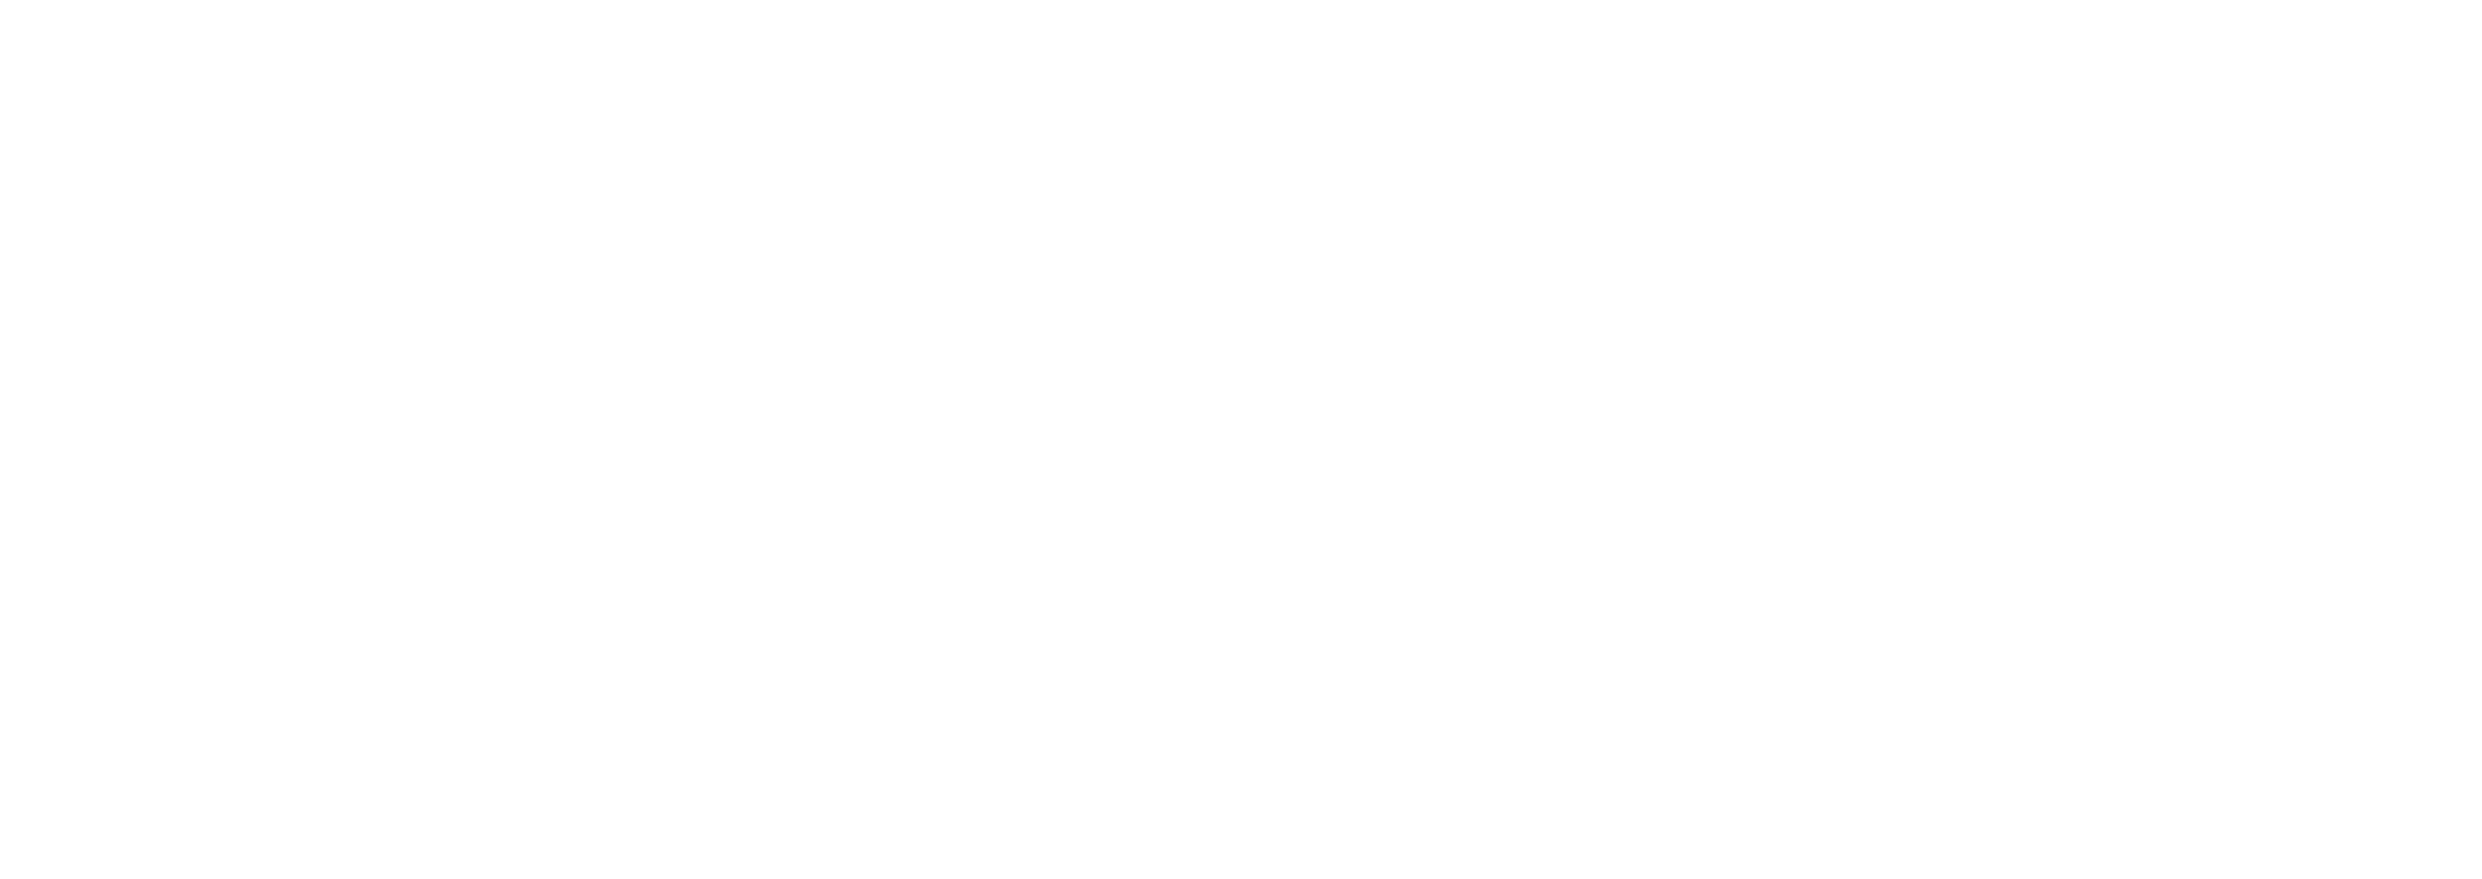 Laboo - Ideas byTrees